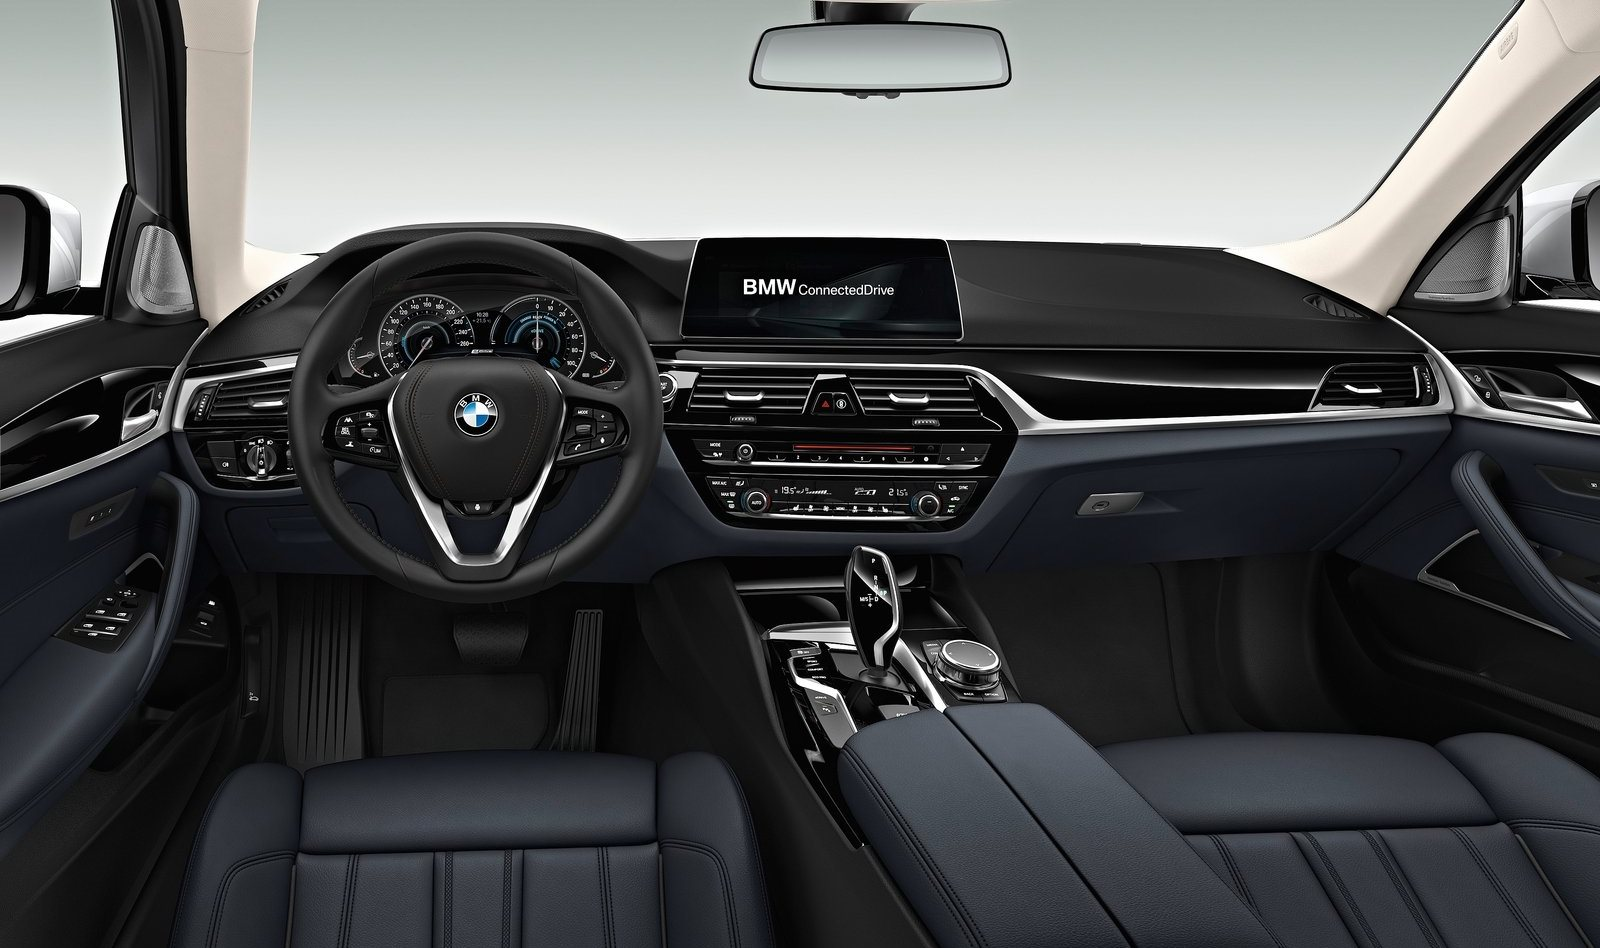 bmw-5-serie-iperformance-plug-in-hybride-interieur